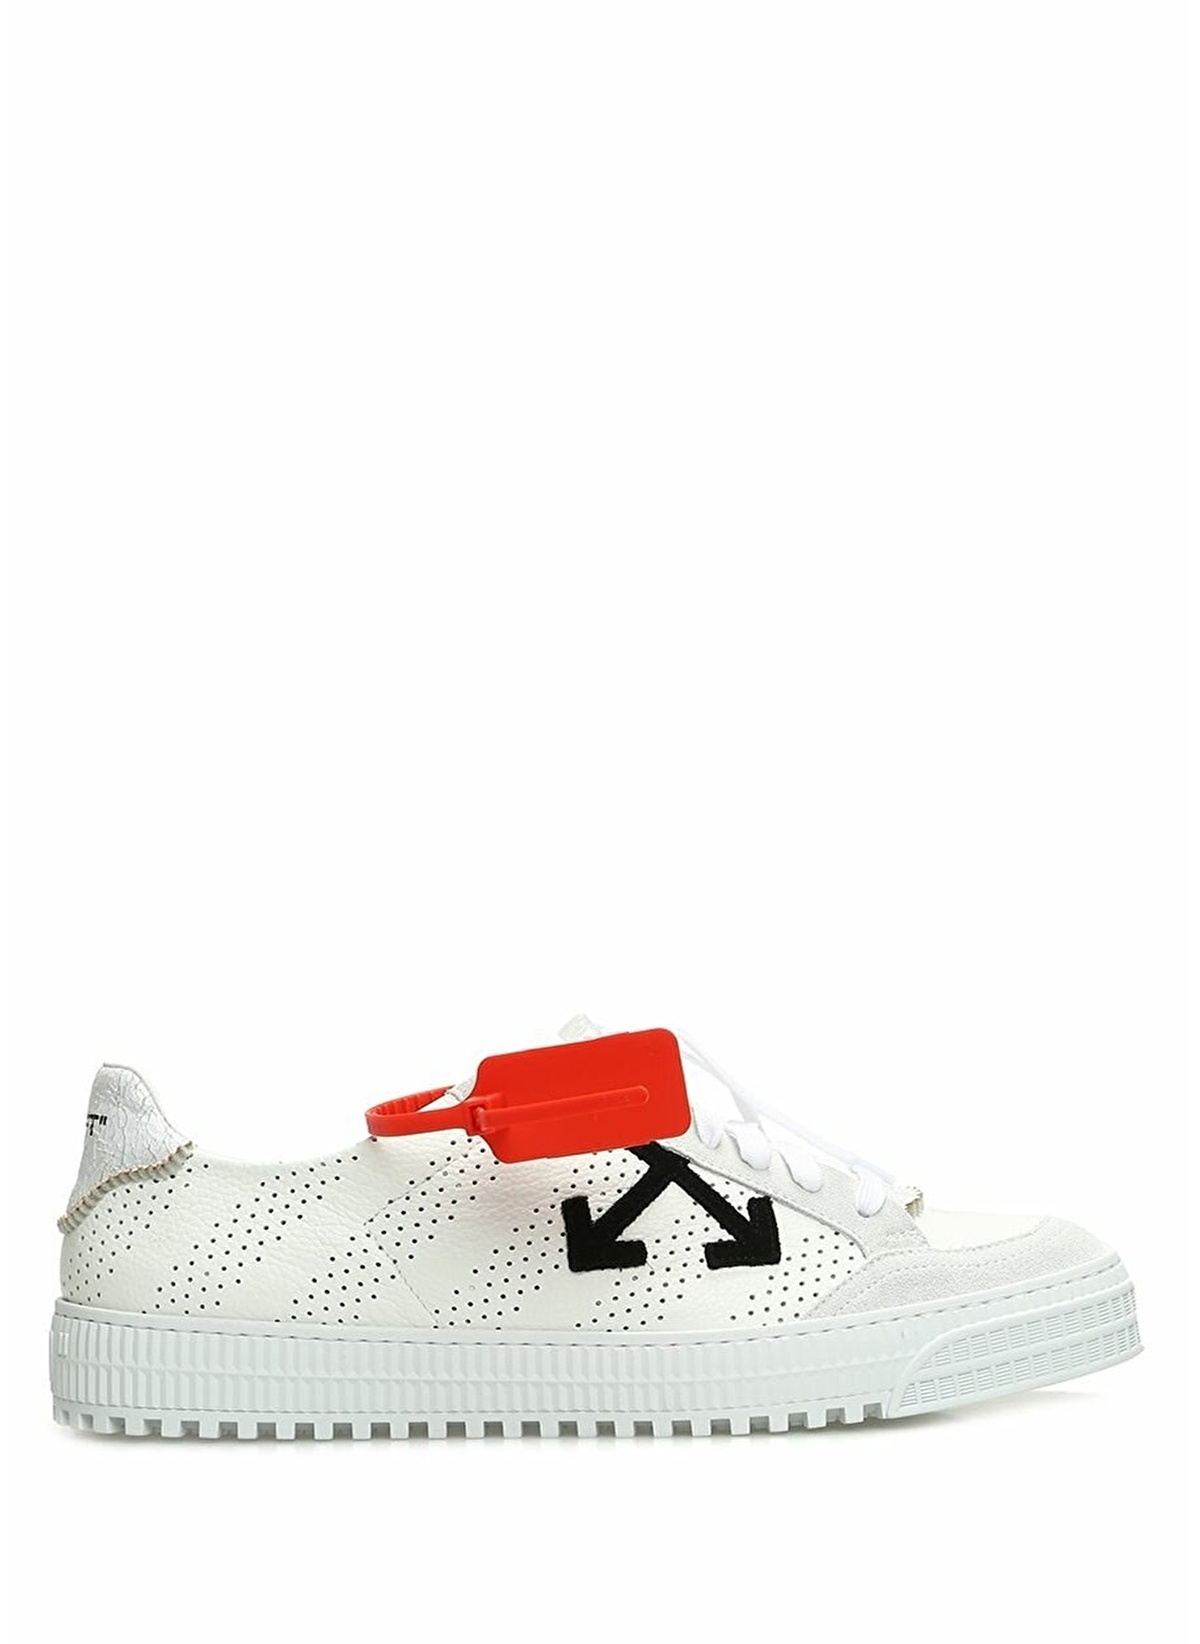 Off-white Sneakers 101384403 E Sneakers – 4099.0 TL